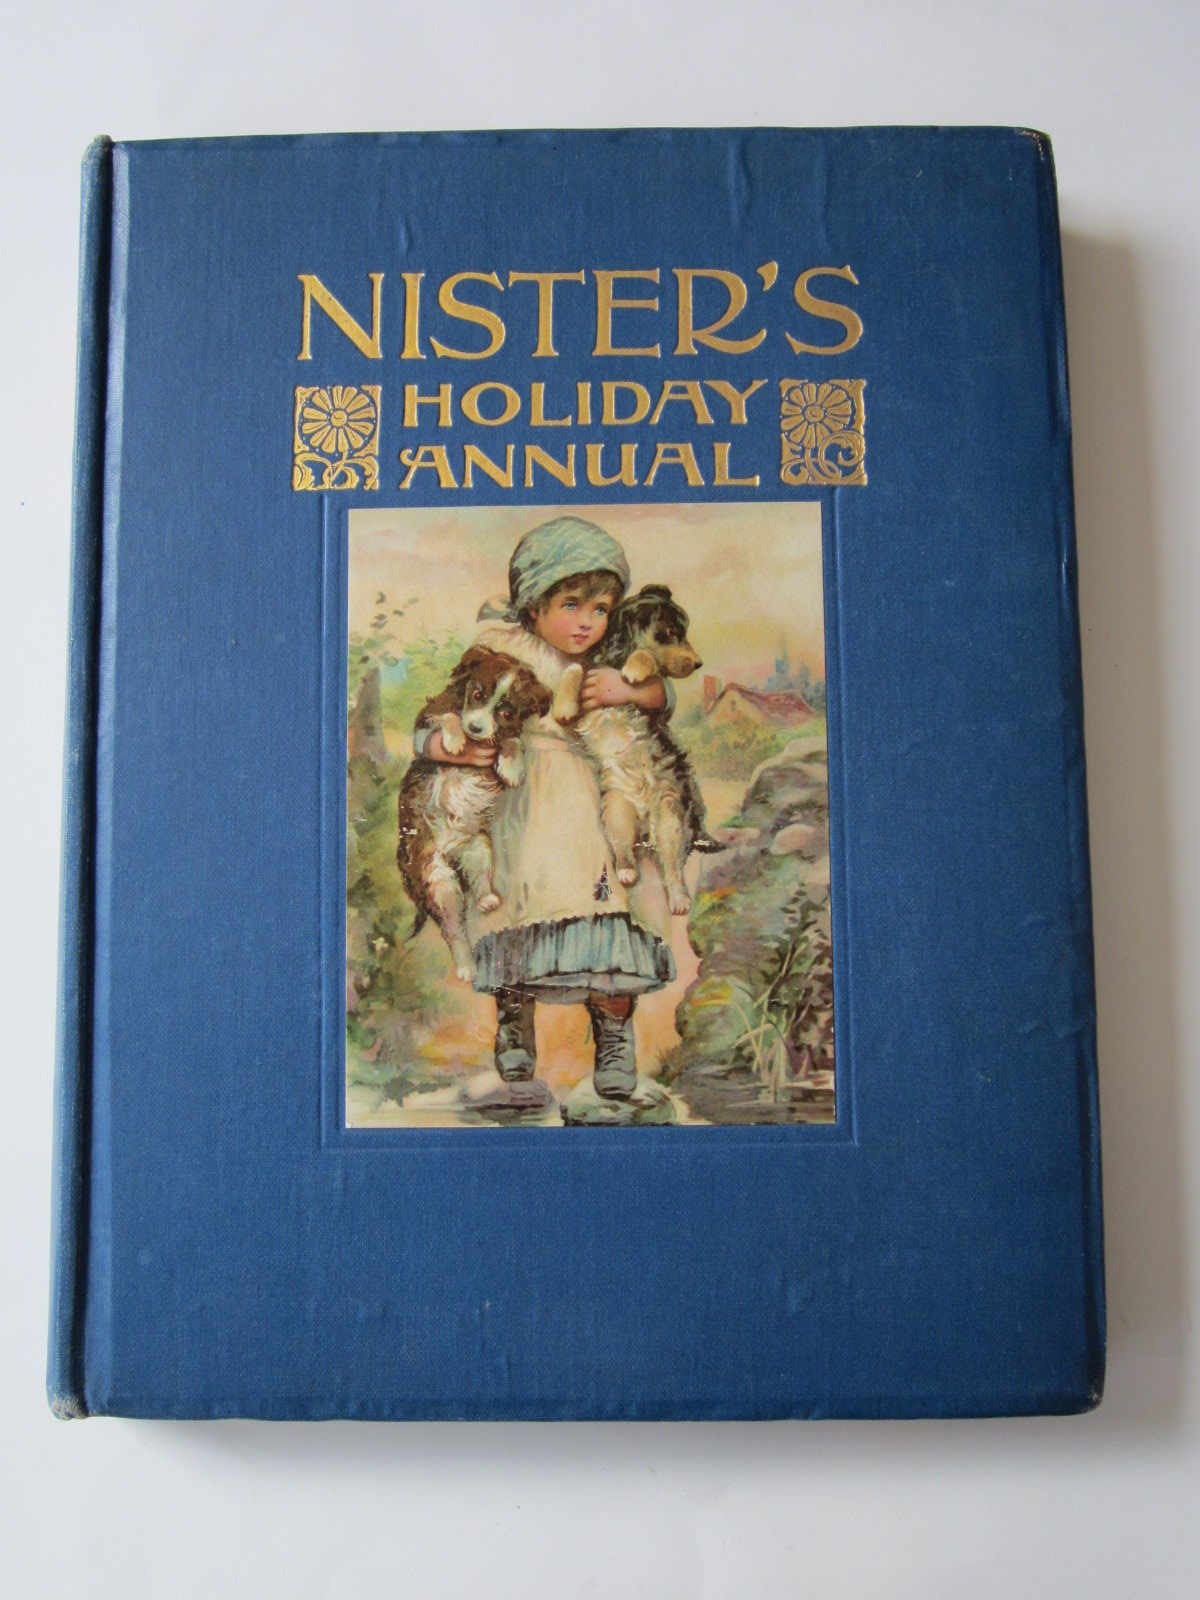 Photo of NISTER'S HOLIDAY ANNUAL - 25TH YEAR written by Playne, Alfred C. Everett-Green, Evelyn Bingham, Clifton et al,  illustrated by Petherick, Rosa C. Hardy, E. Stuart Robinson, Gordon et al.,  published by Ernest Nister (STOCK CODE: 1307930)  for sale by Stella & Rose's Books